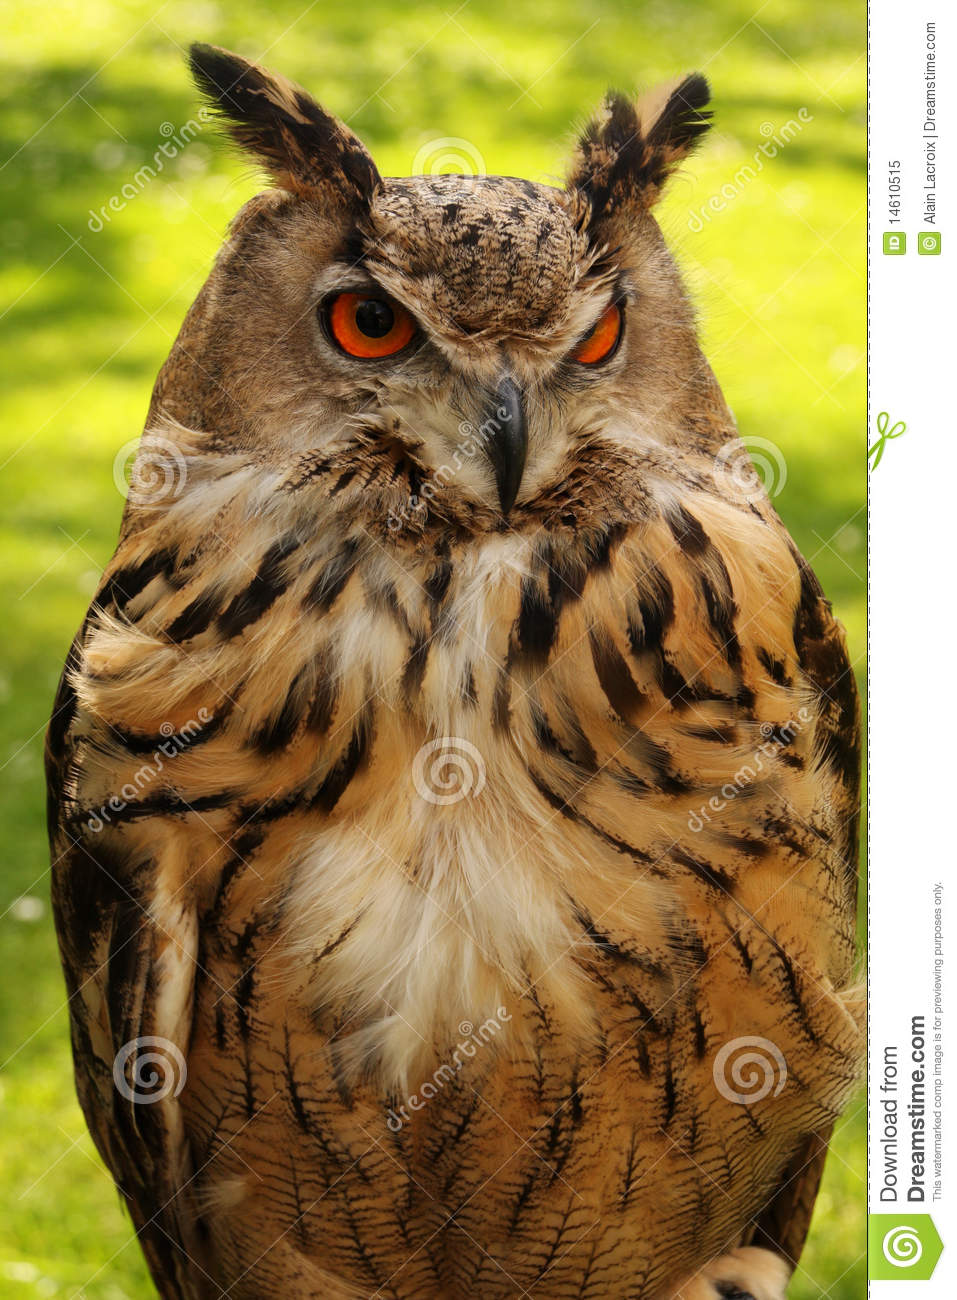 Watchful Owl Royalty Free Stock Photo Image 14610515